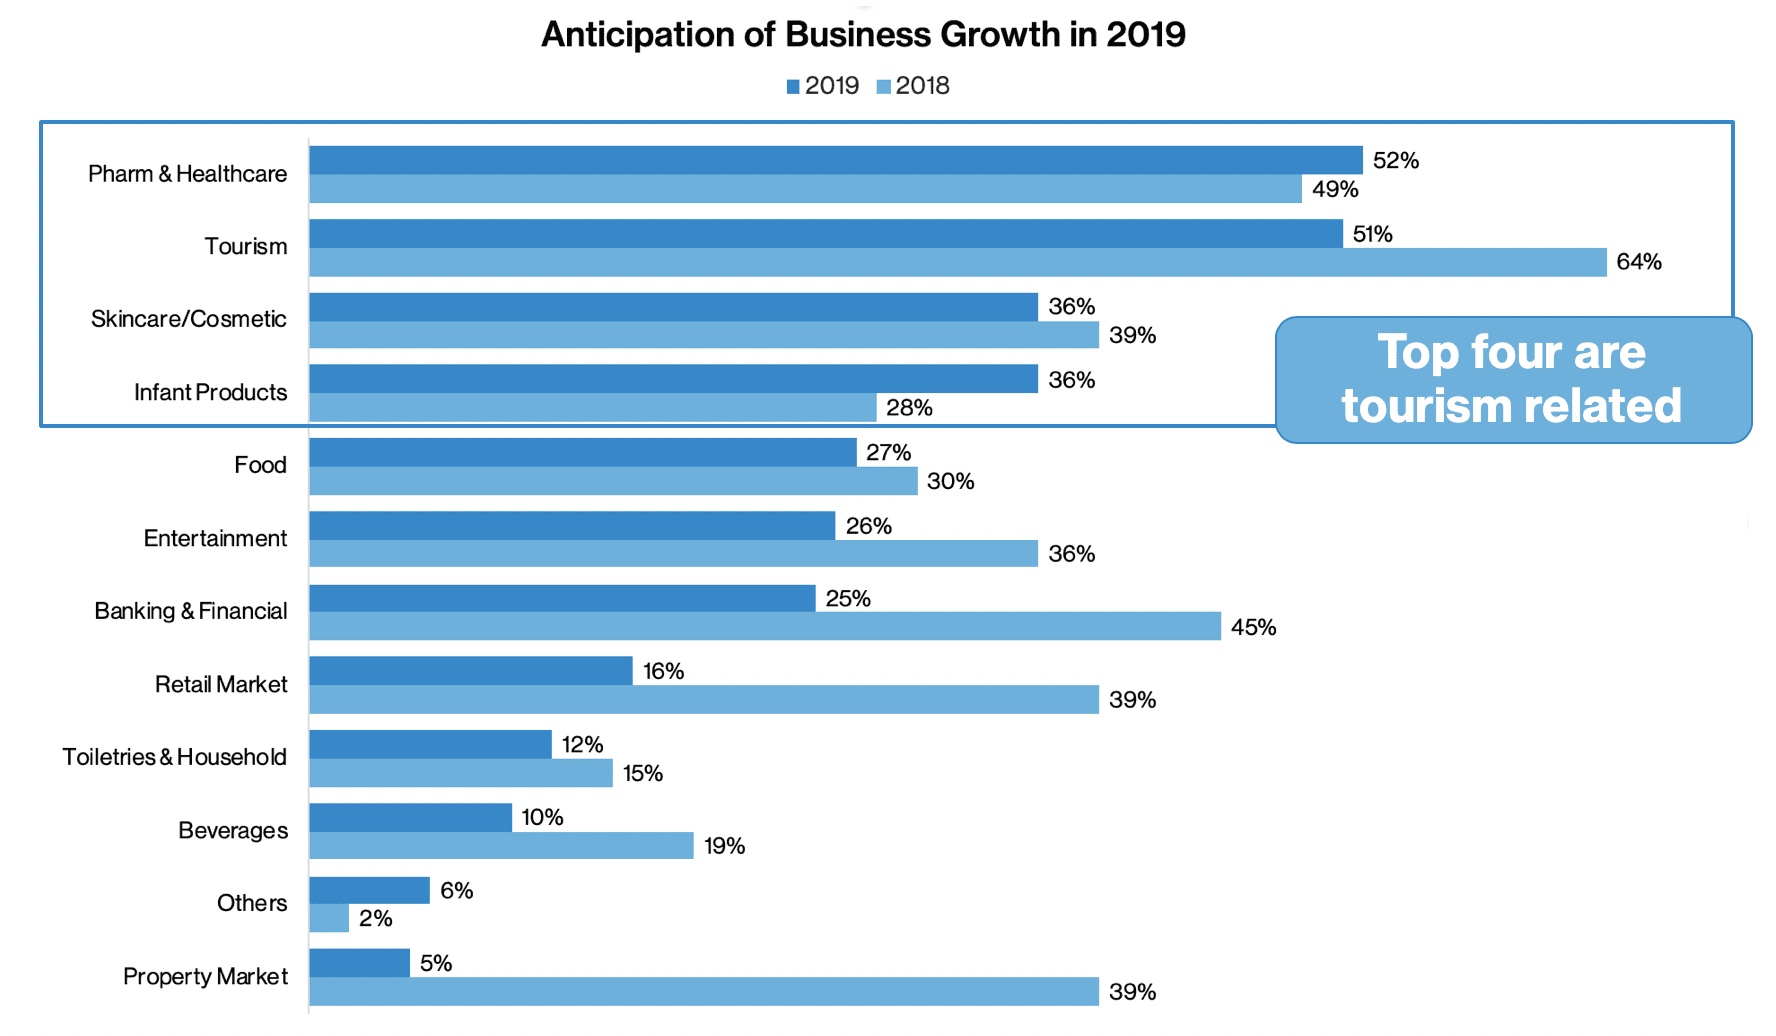 Anticipation of Business Growth in 2019